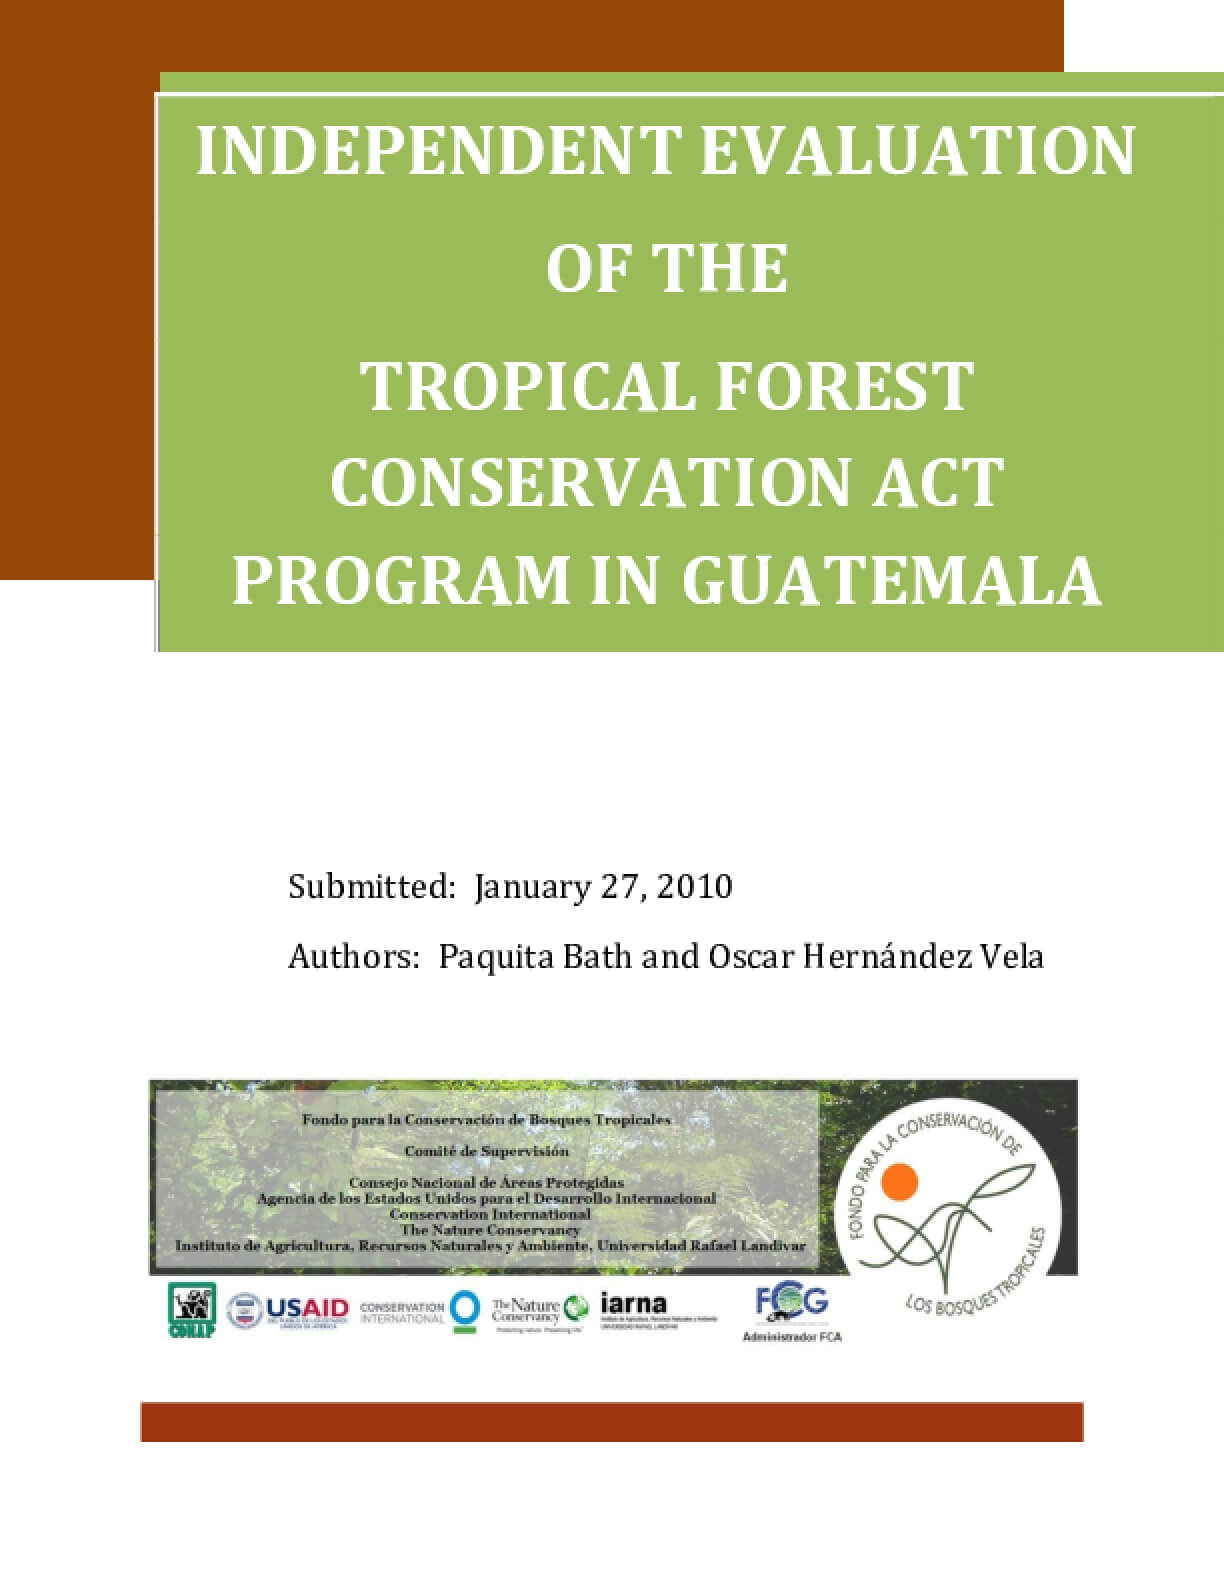 Independent Evaluation of the Tropical Forest Conservation Act Program in Guatemala